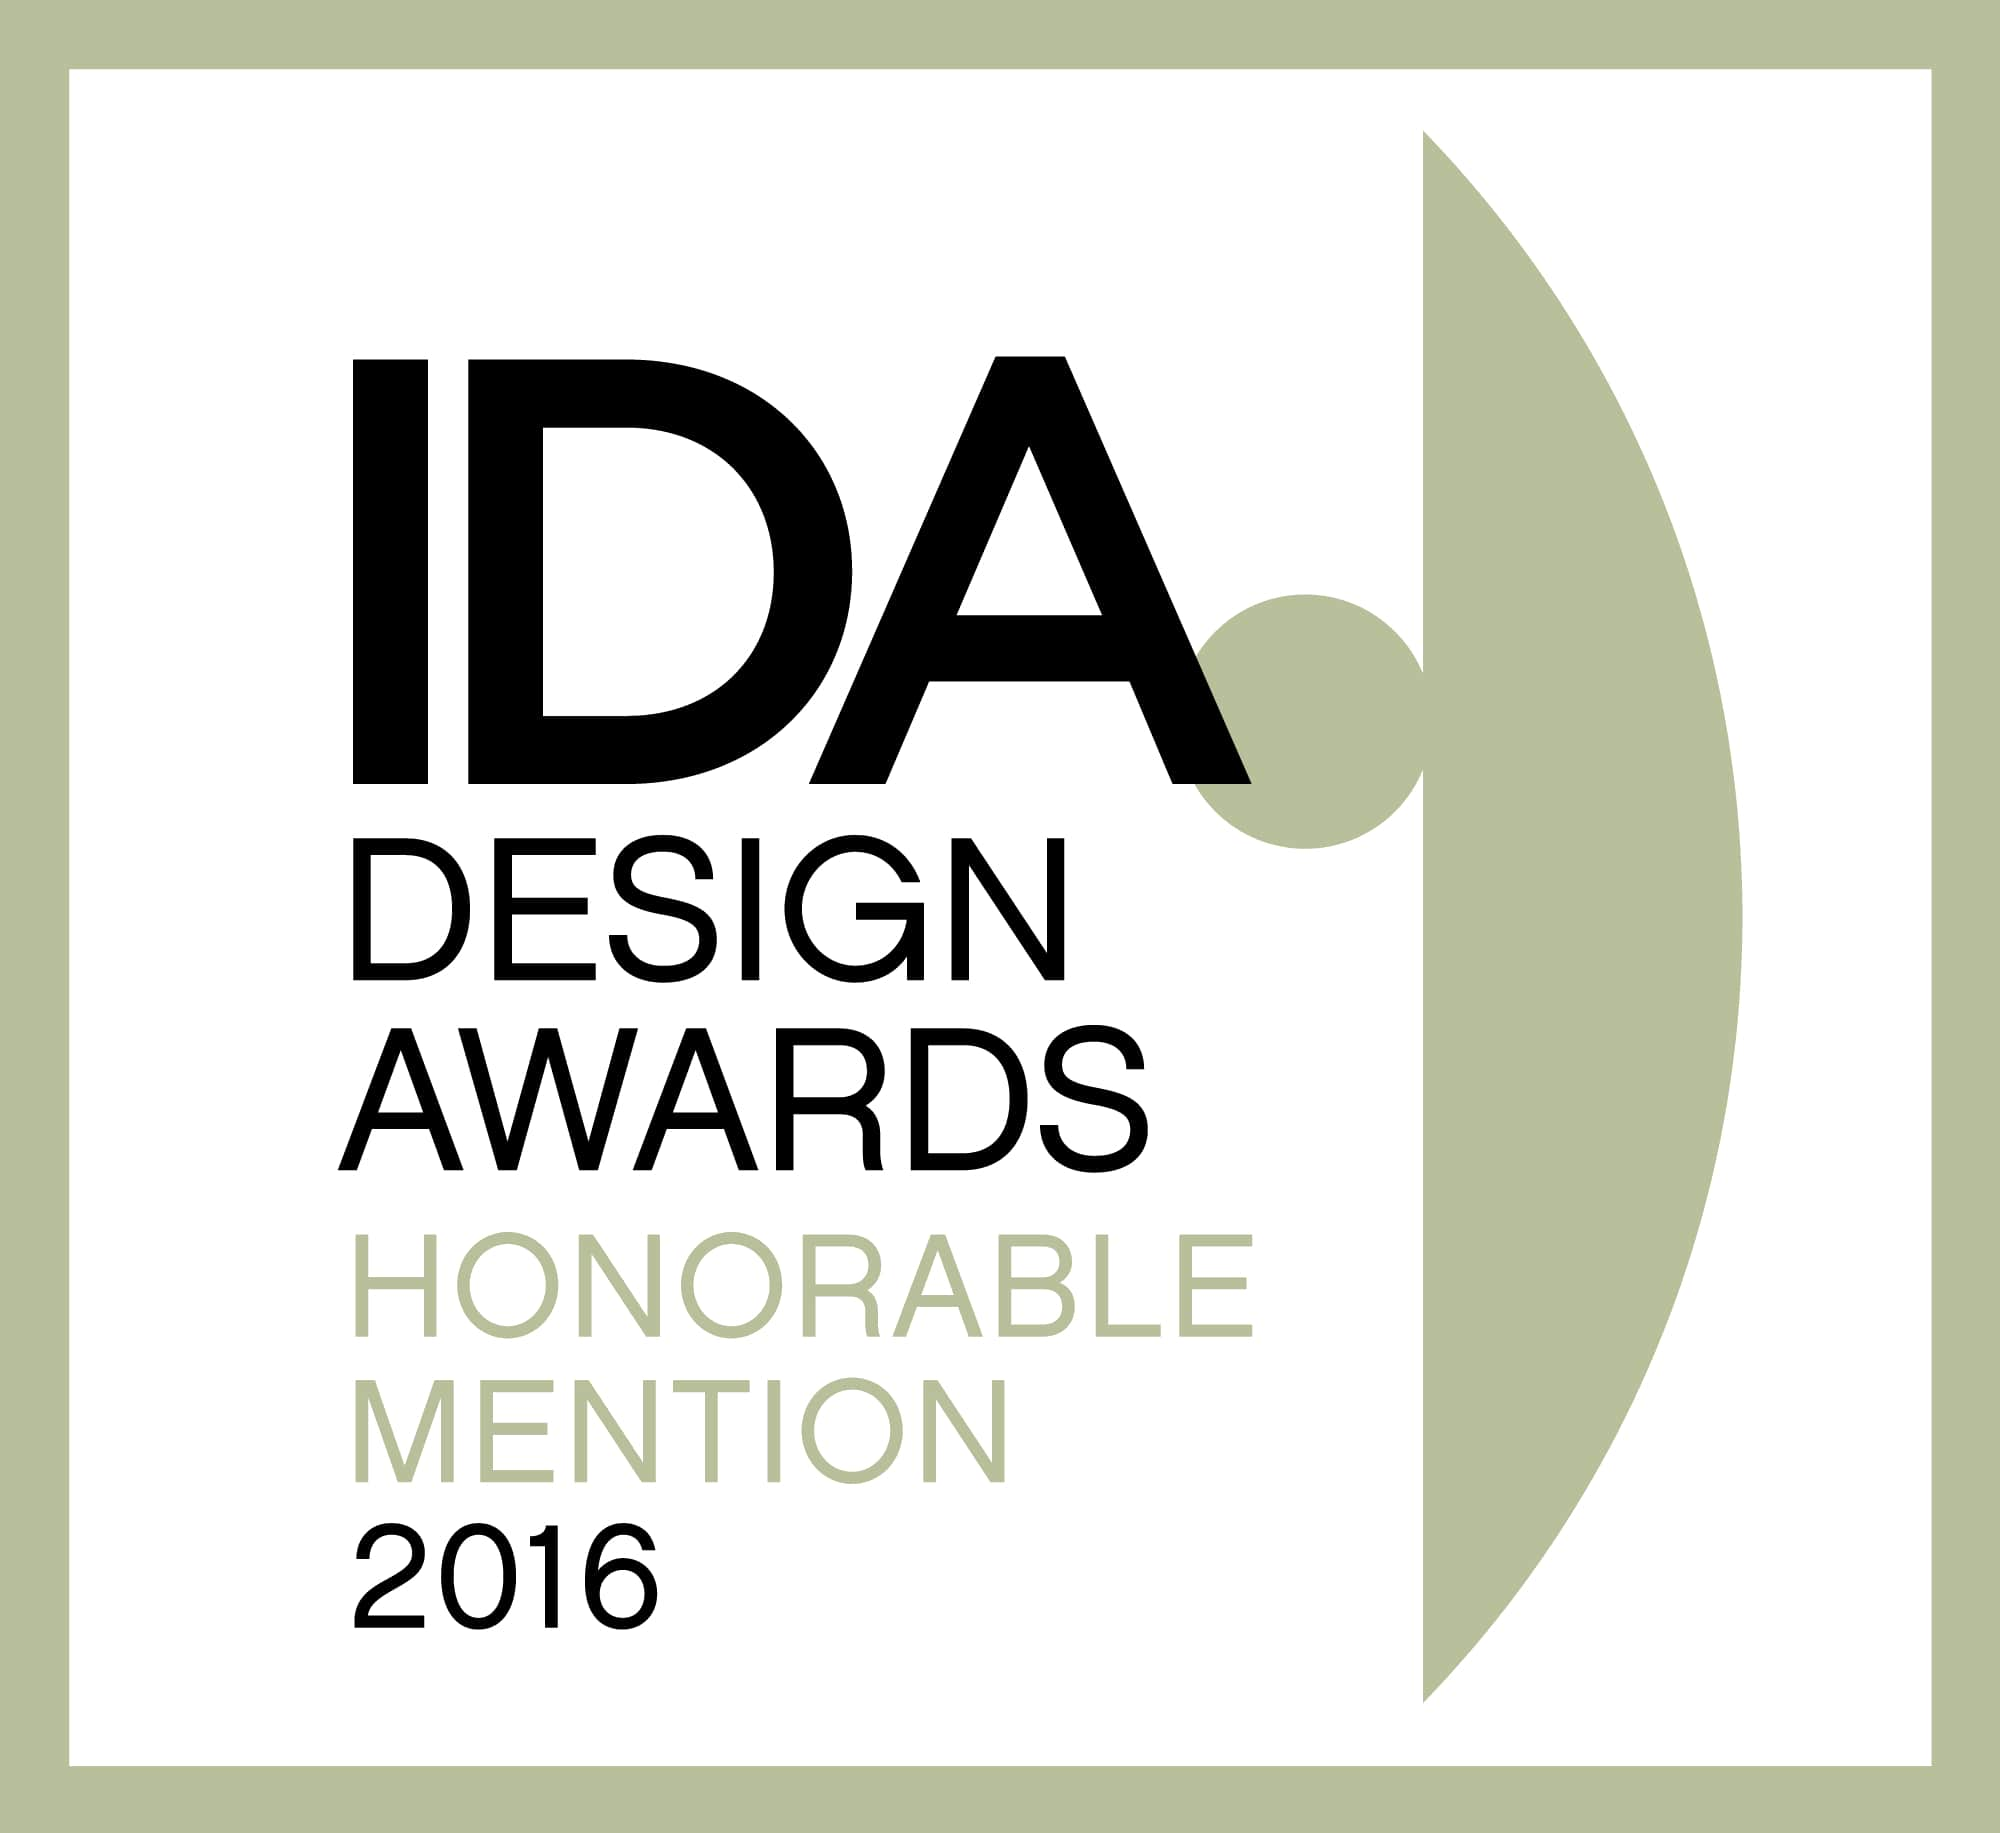 International Design Award